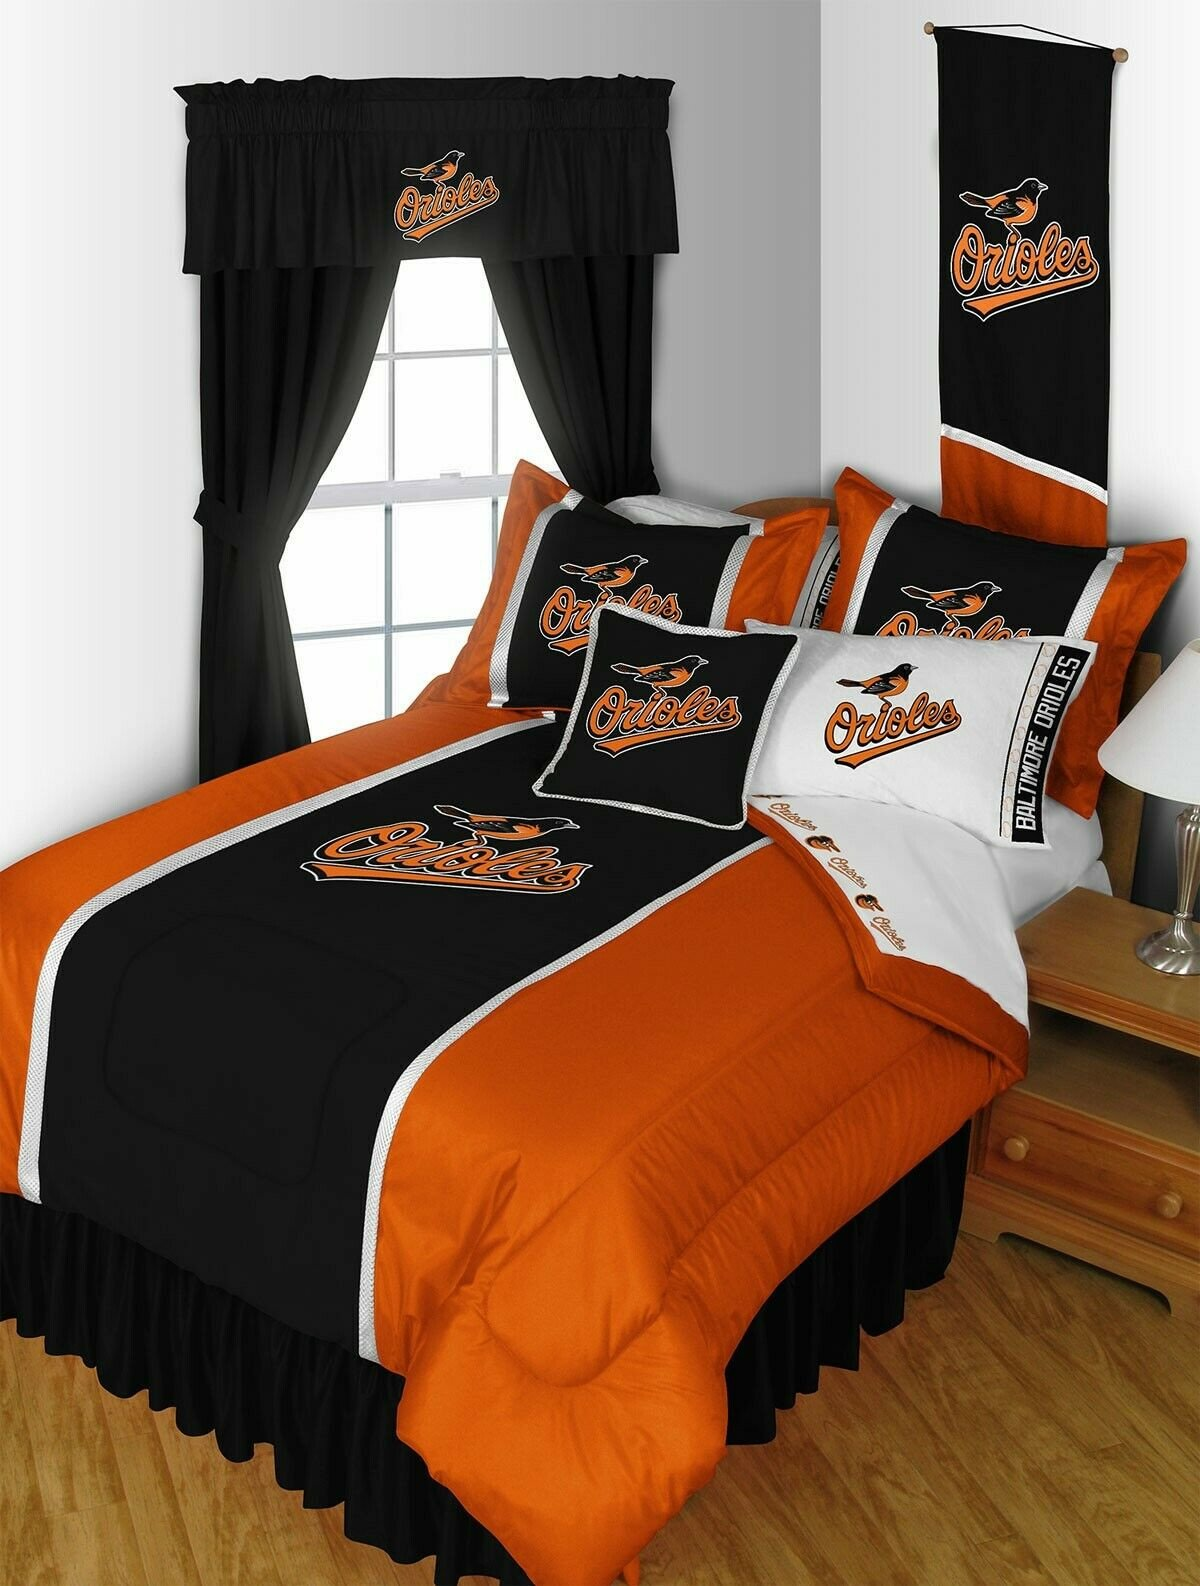 Dallas Cowboy Bedroom Set Luxury New Mlb Baseball forter Sports League Team Logo Bedding Cover Blanket